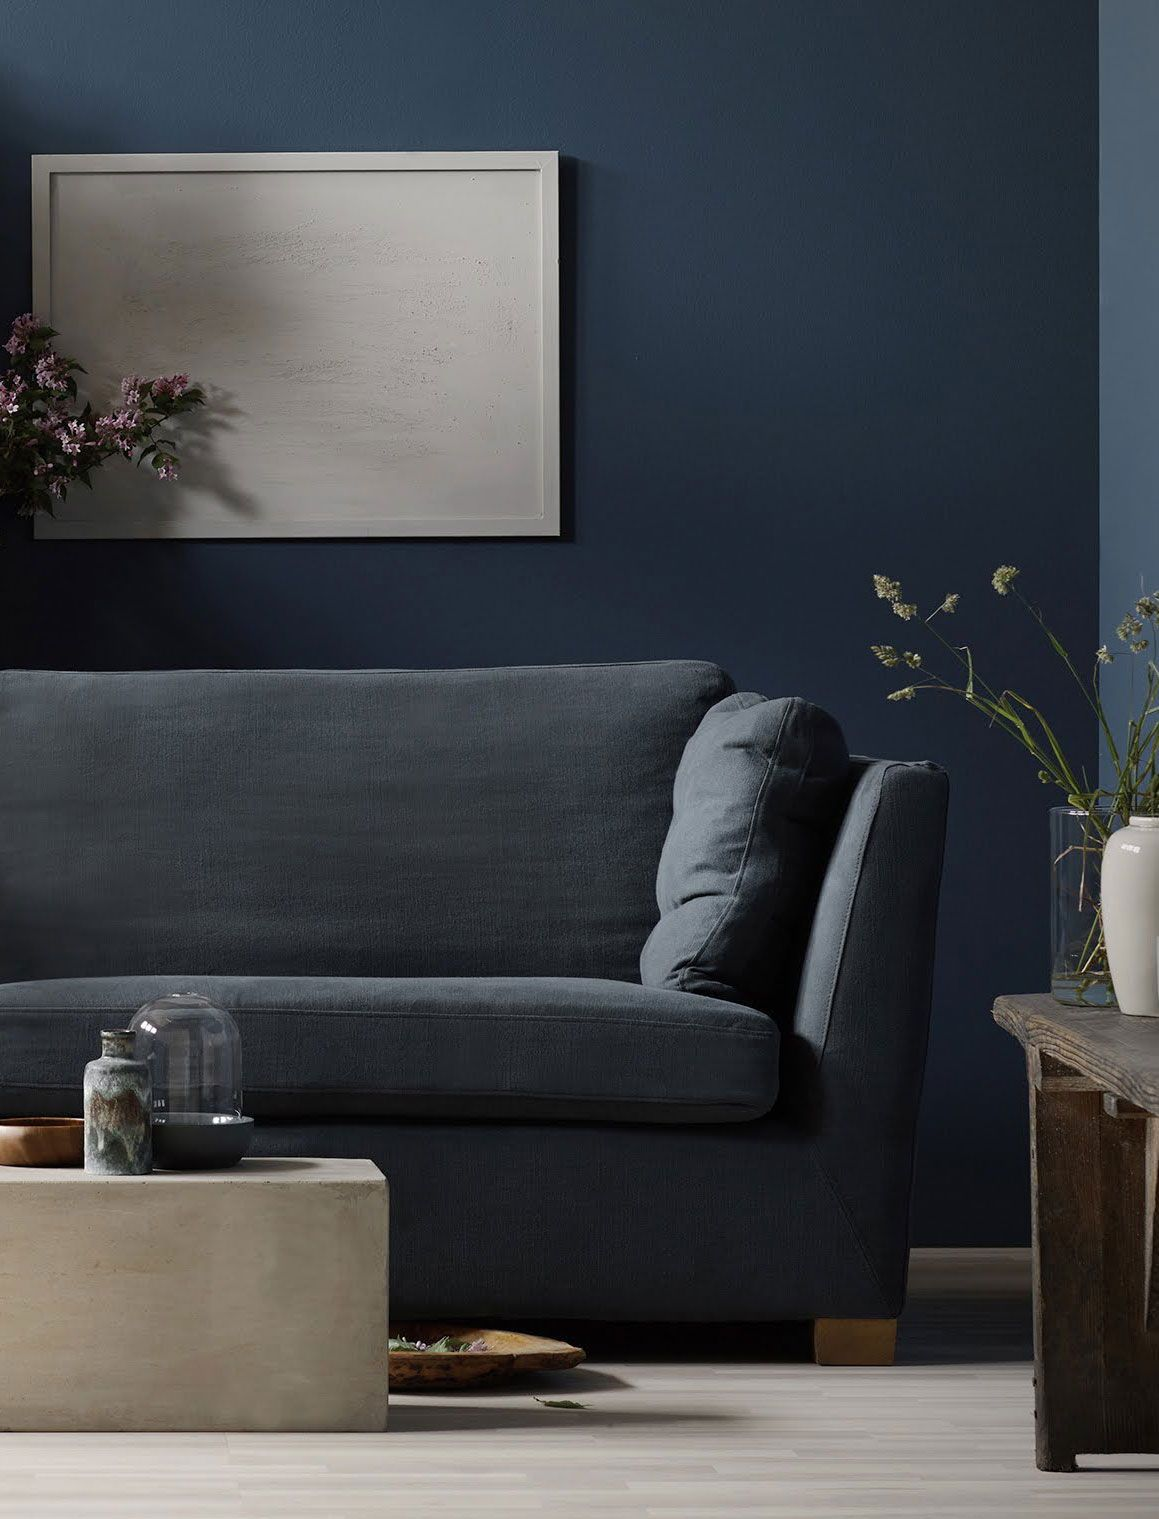 Moody Shades Are All The Range We Re Loving The Juxtaposition Of The Light Floors And Dark Walls With The Modern Coff Sofa Ikea Stockholm Sofa Ikea Stockholm